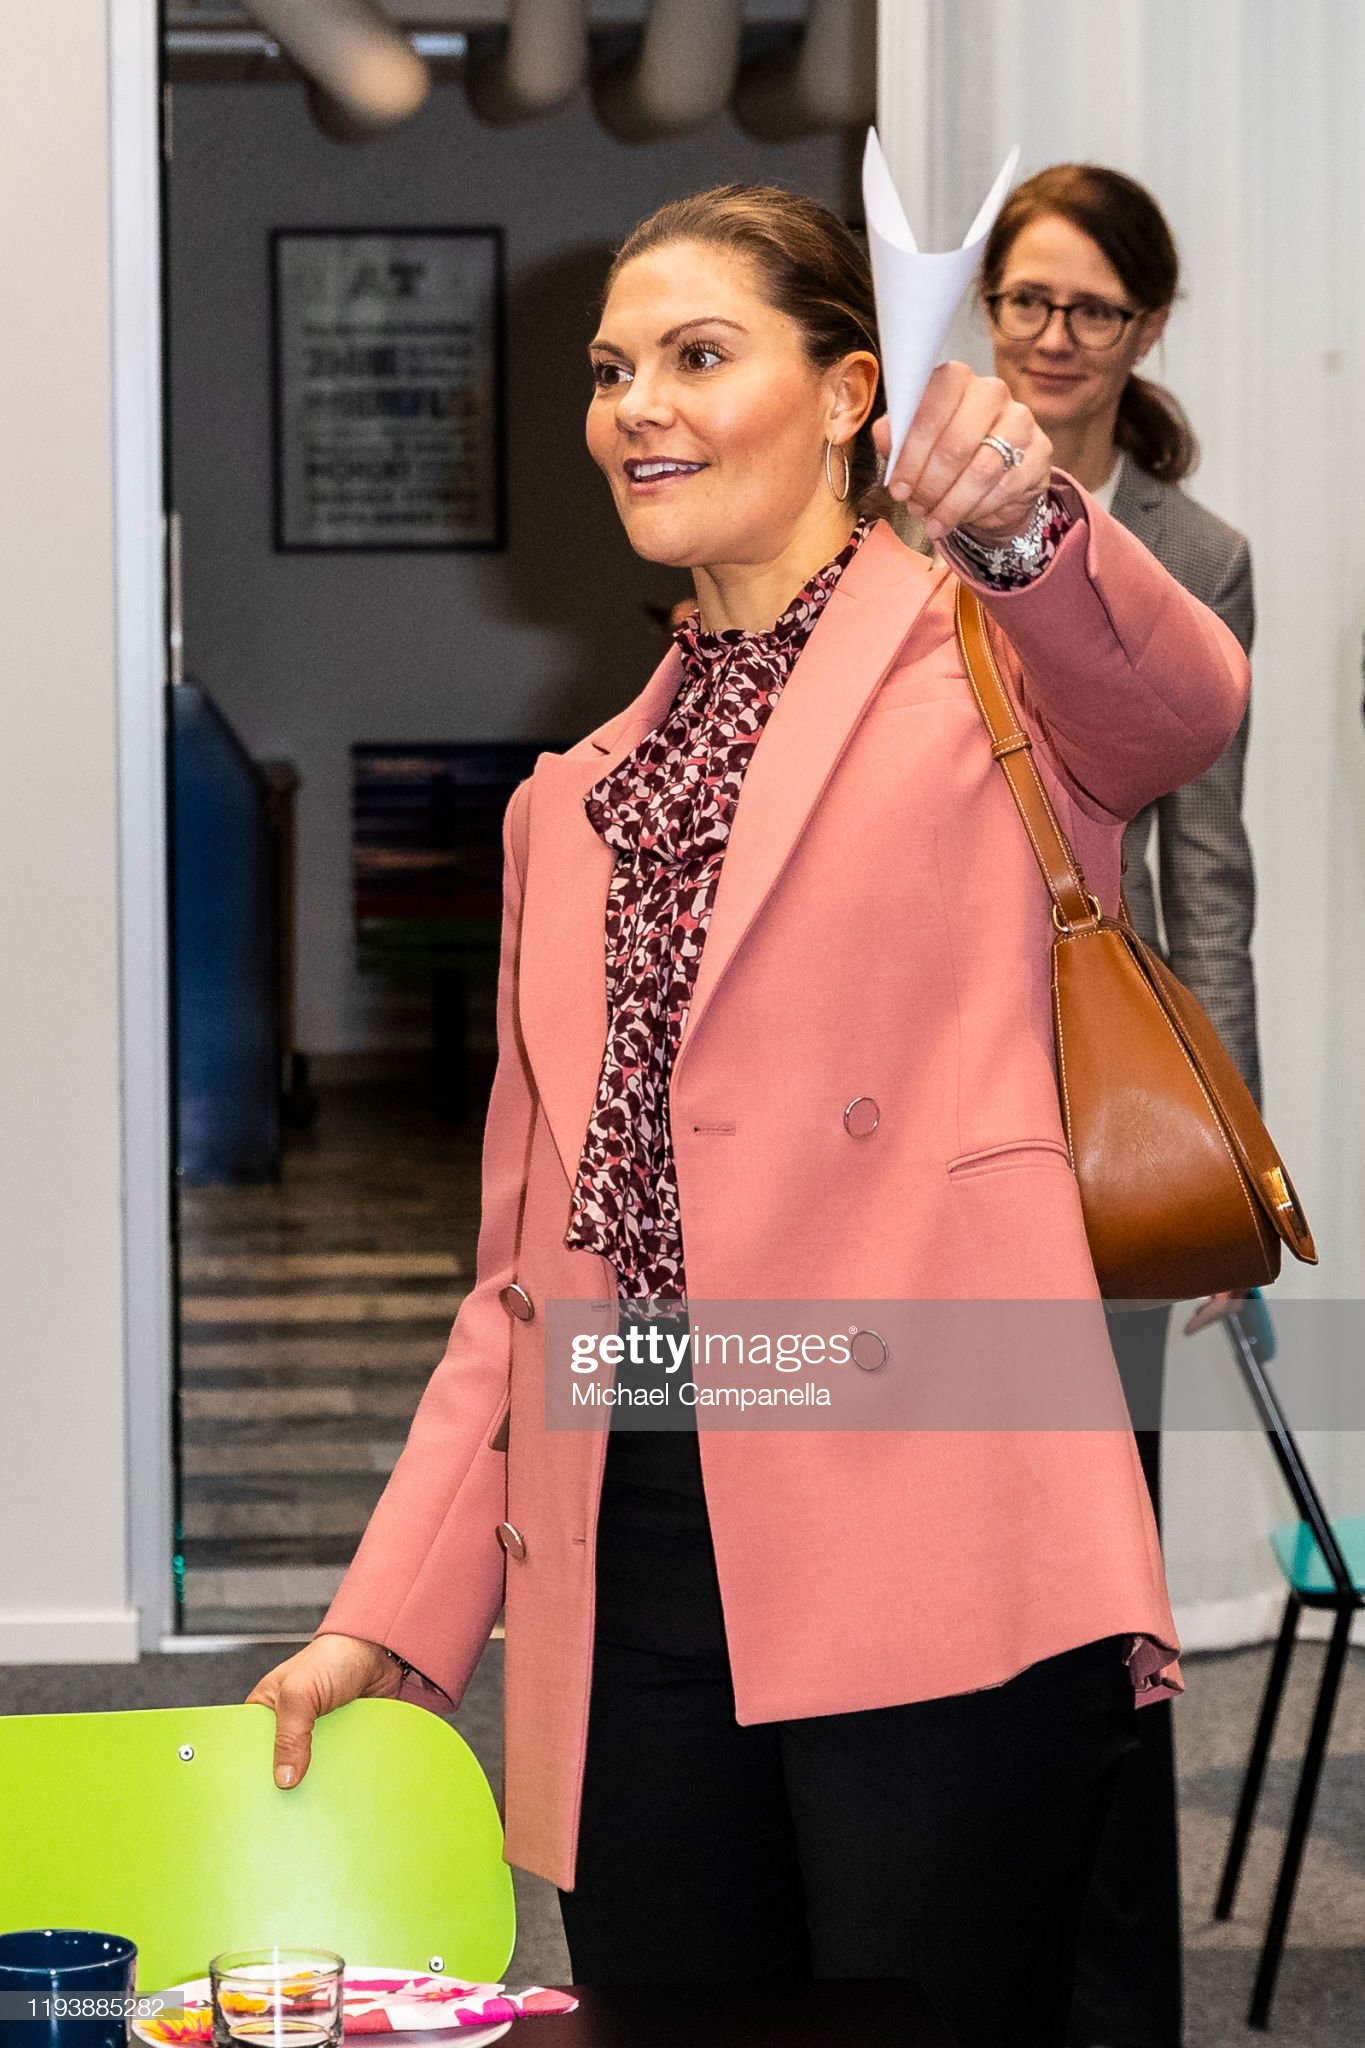 crown-princess-victoria-of-sweden-visits-the-swedish-federation-for-picture-id1193885282